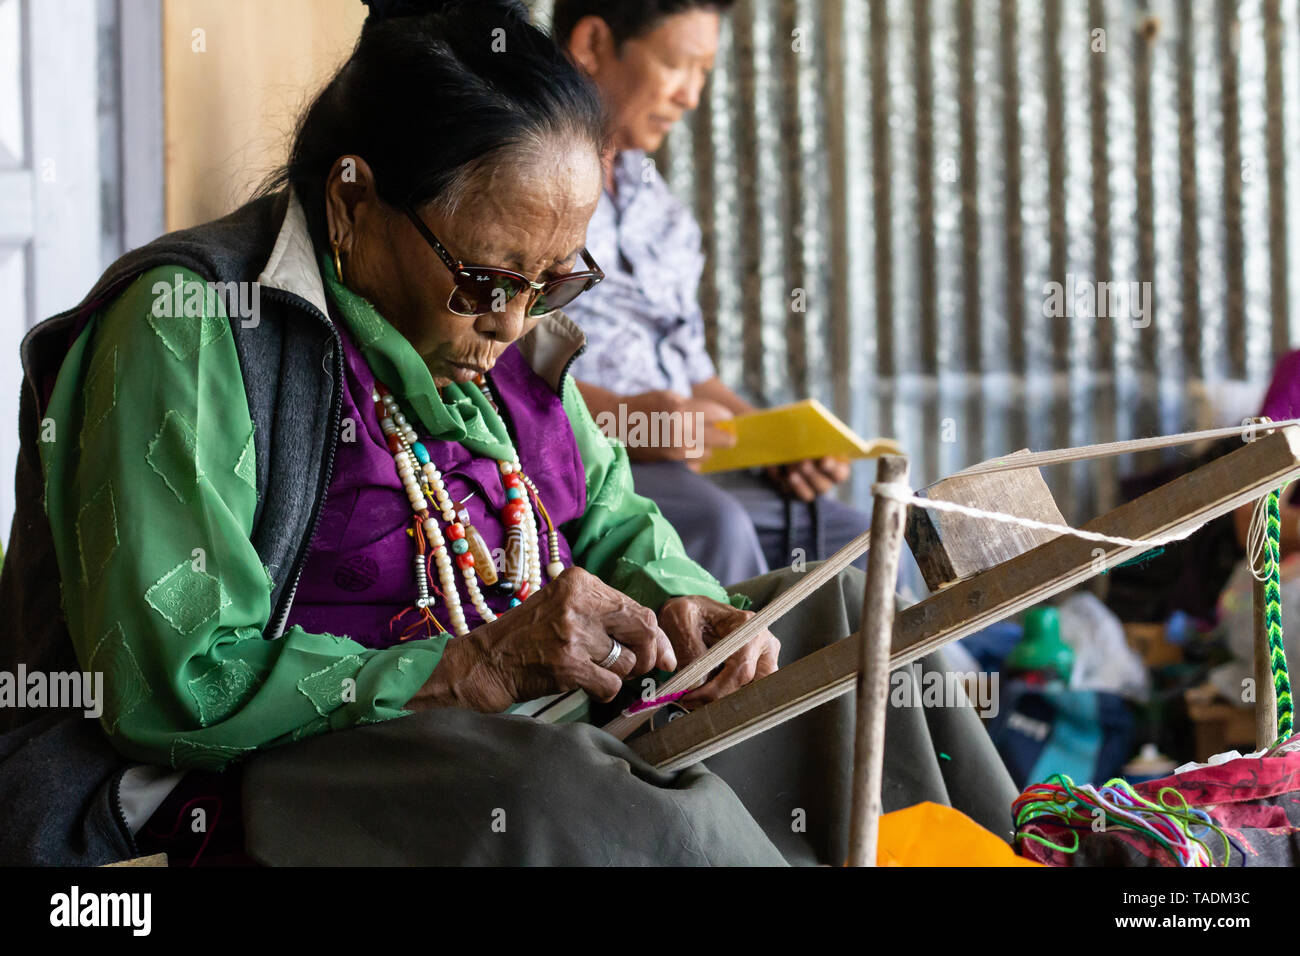 Tibetan exiled woman in refugee camp living in Nepal making a living of weaving on a loom. - Stock Image